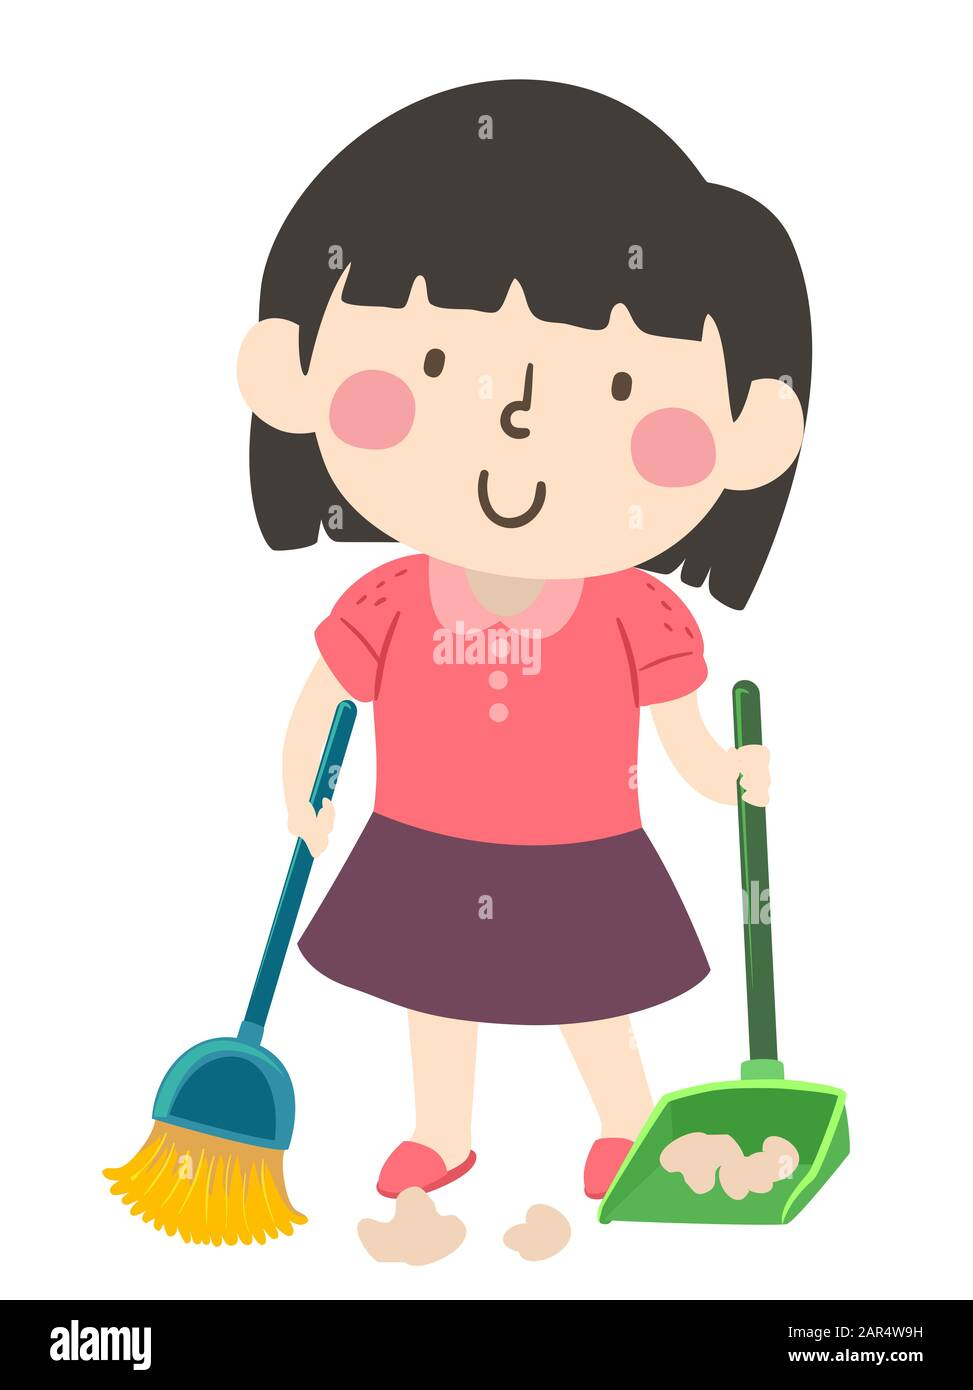 illustration of a kid girl holding broom and dust pan sweeping floor as part of her household chores stock photo alamy https www alamy com illustration of a kid girl holding broom and dust pan sweeping floor as part of her household chores image341241757 html